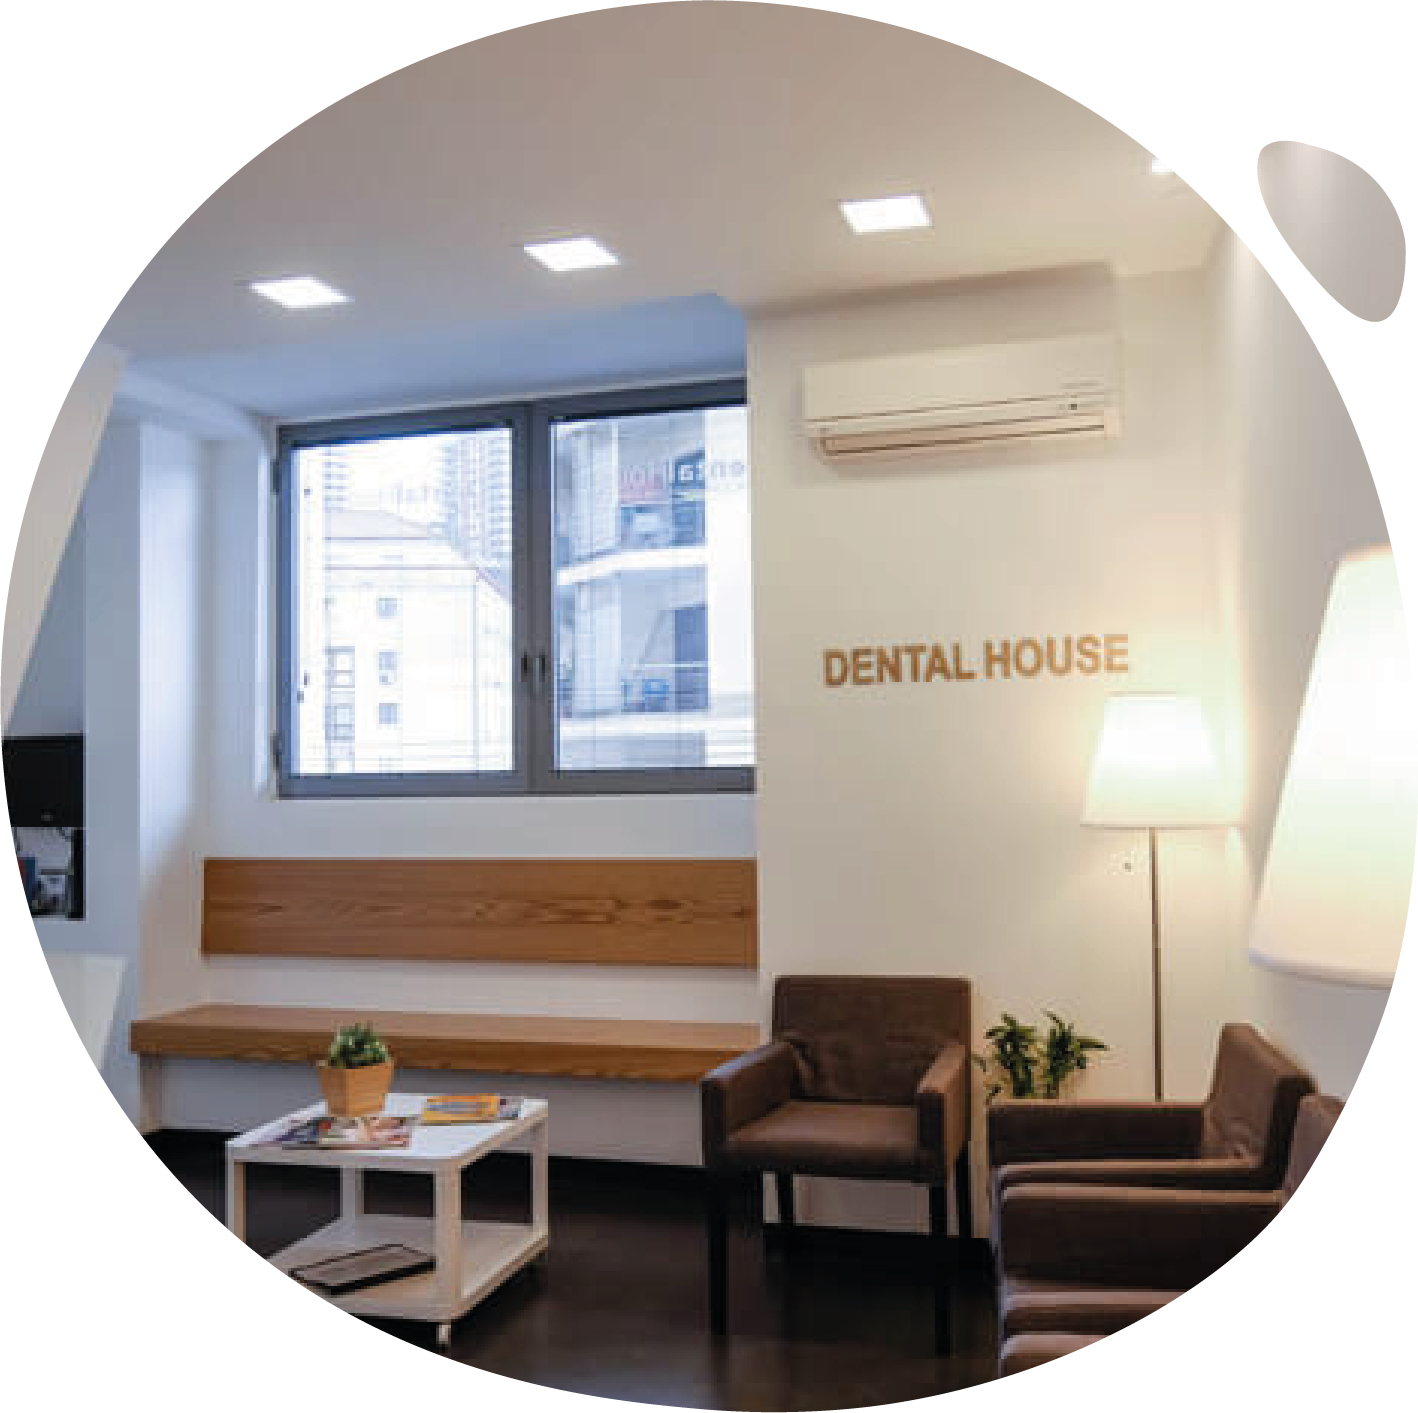 https://www.mydentalhouse.com/wp-content/uploads/clinica3.png